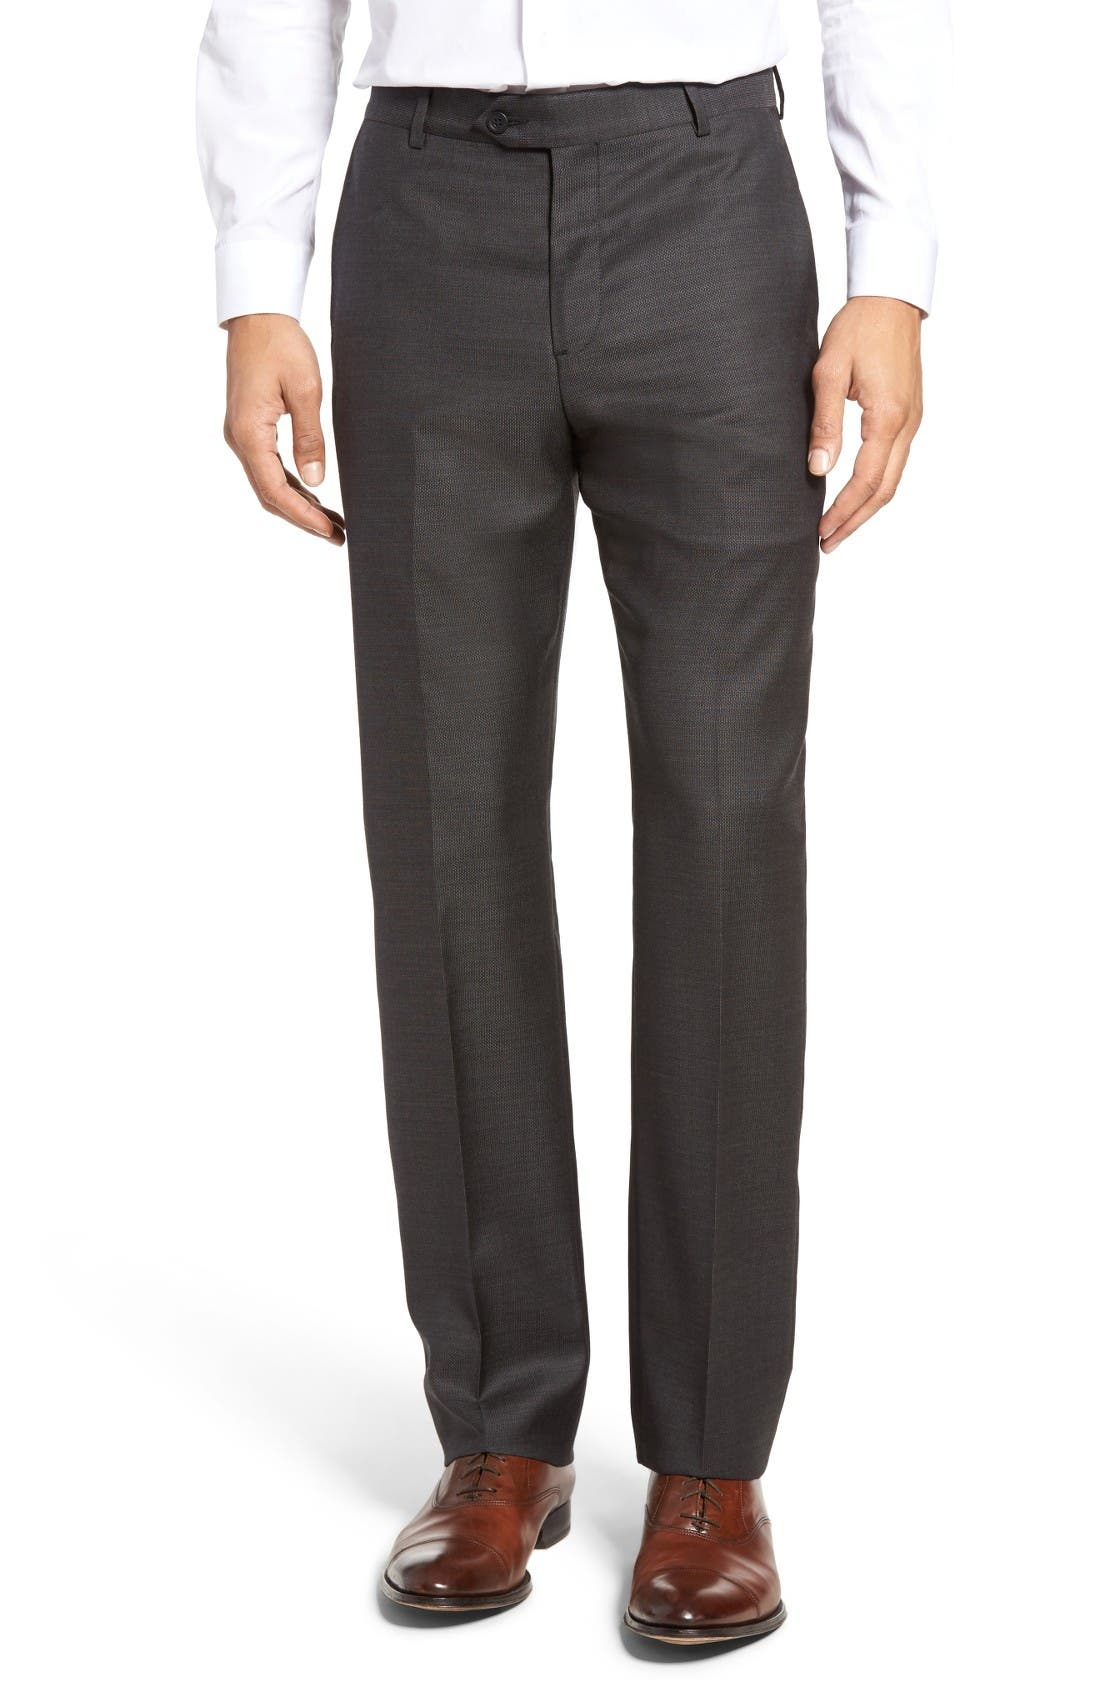 Alternate Image 1 Selected - John W. Nordstrom® Flat Front Solid Wool Trousers